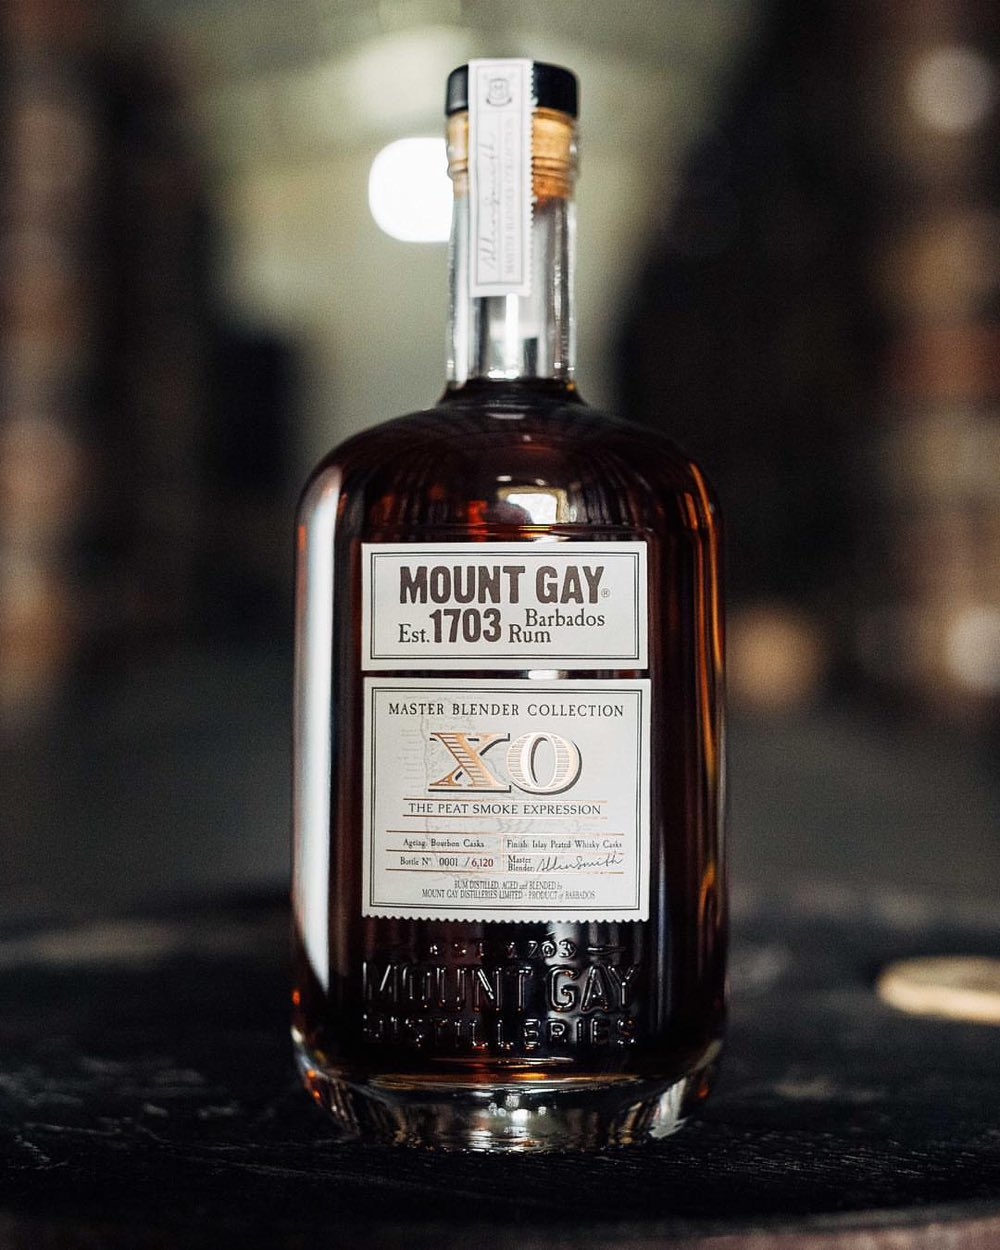 Mount Gay XO The Peat Smoke Expression is the first release in the Master Blender Collection